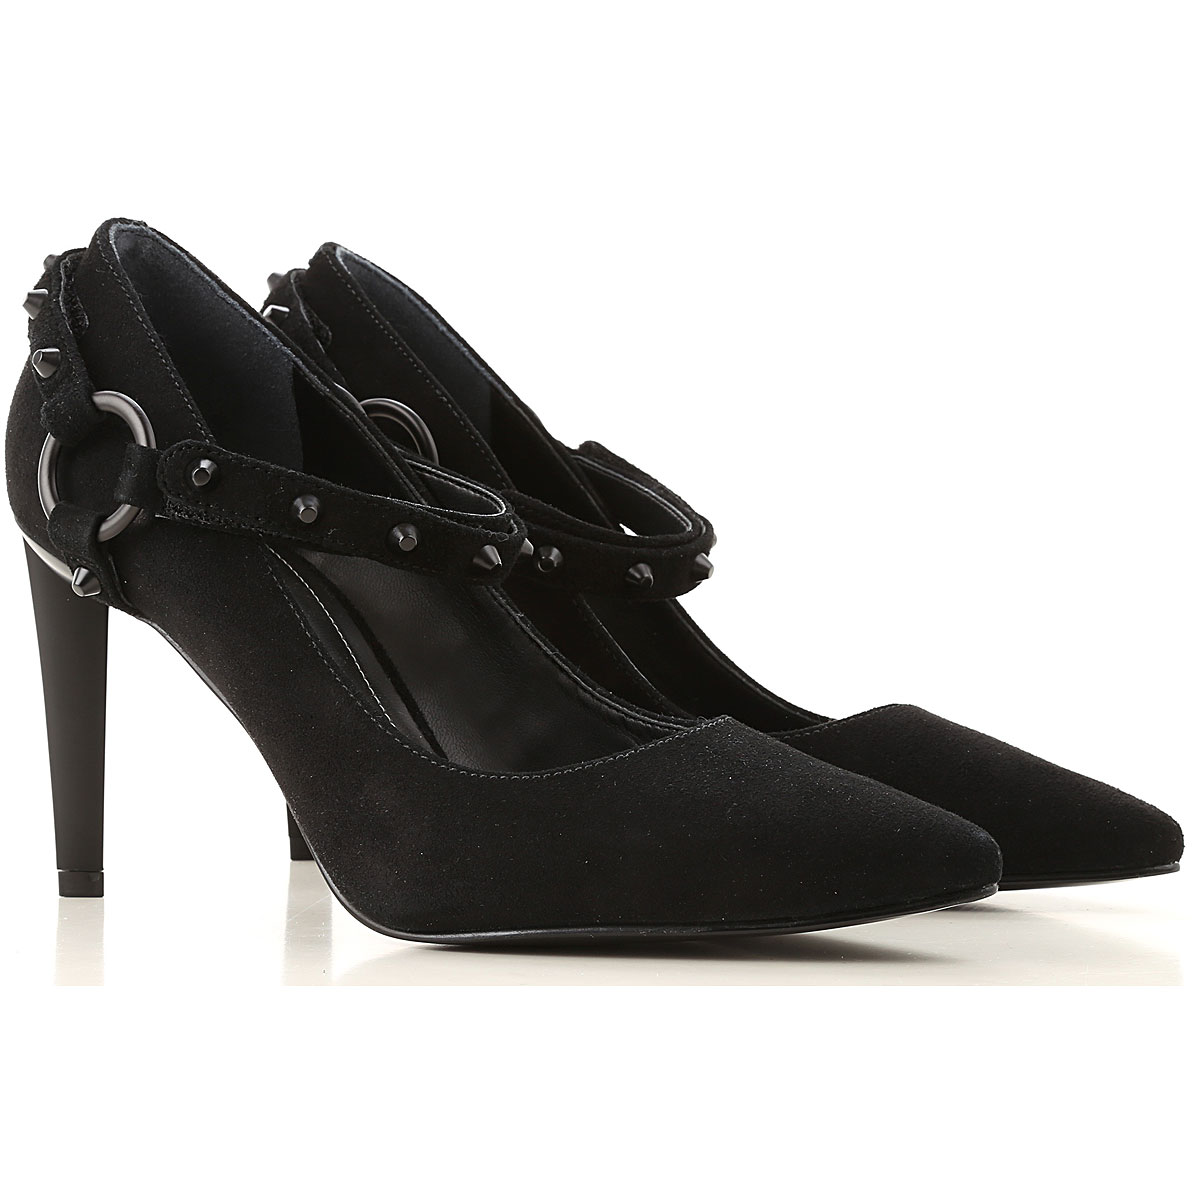 Kendall Kylie Pumps & High Heels for Women On Sale in Outlet, Black, Leather, 2019, 5.5 8